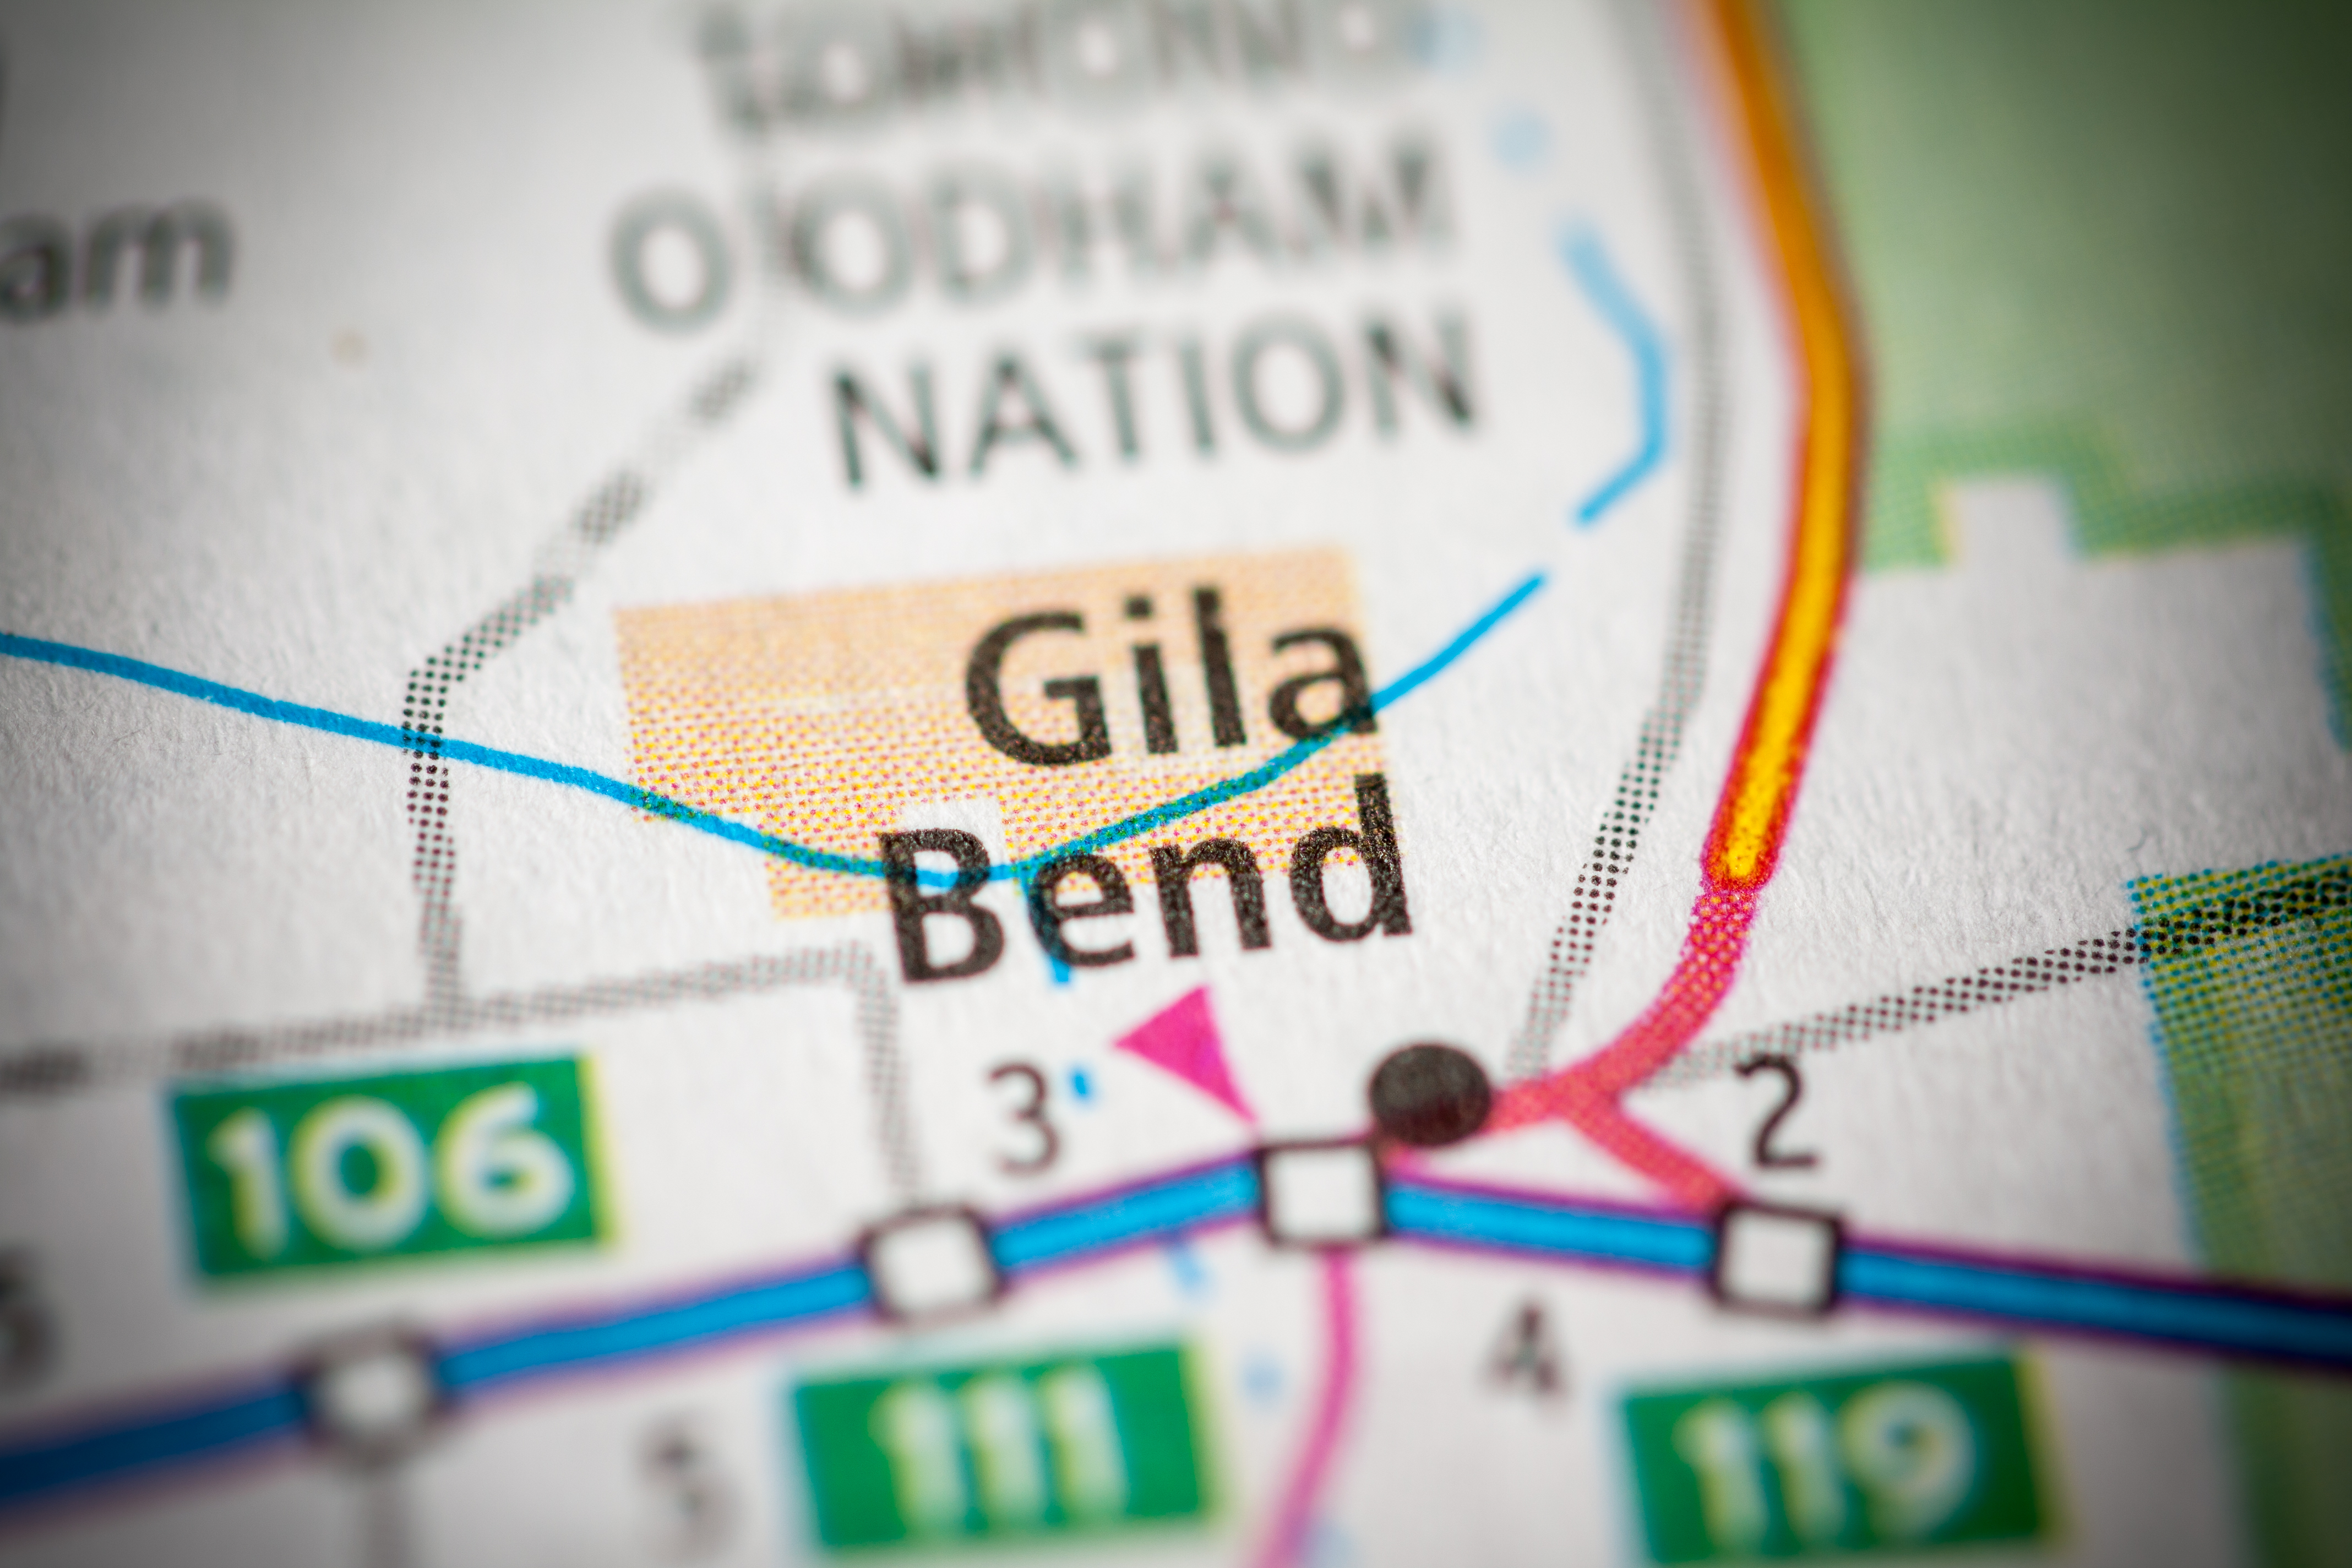 enlarged map shows gila bend